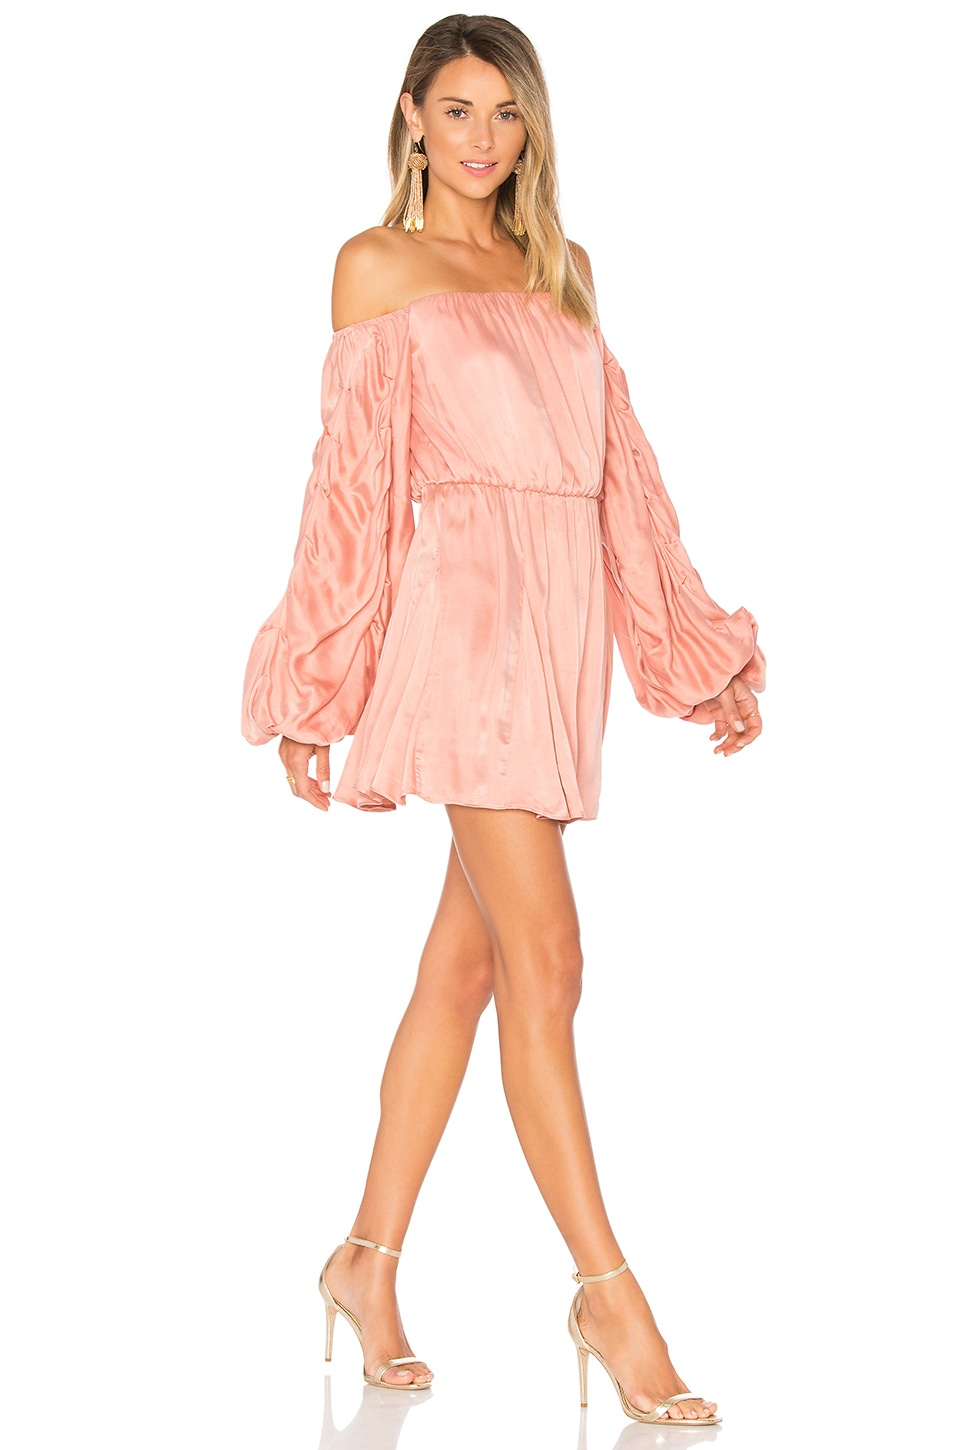 Lovers + Friends x REVOLVE Windblown Dress in Rose